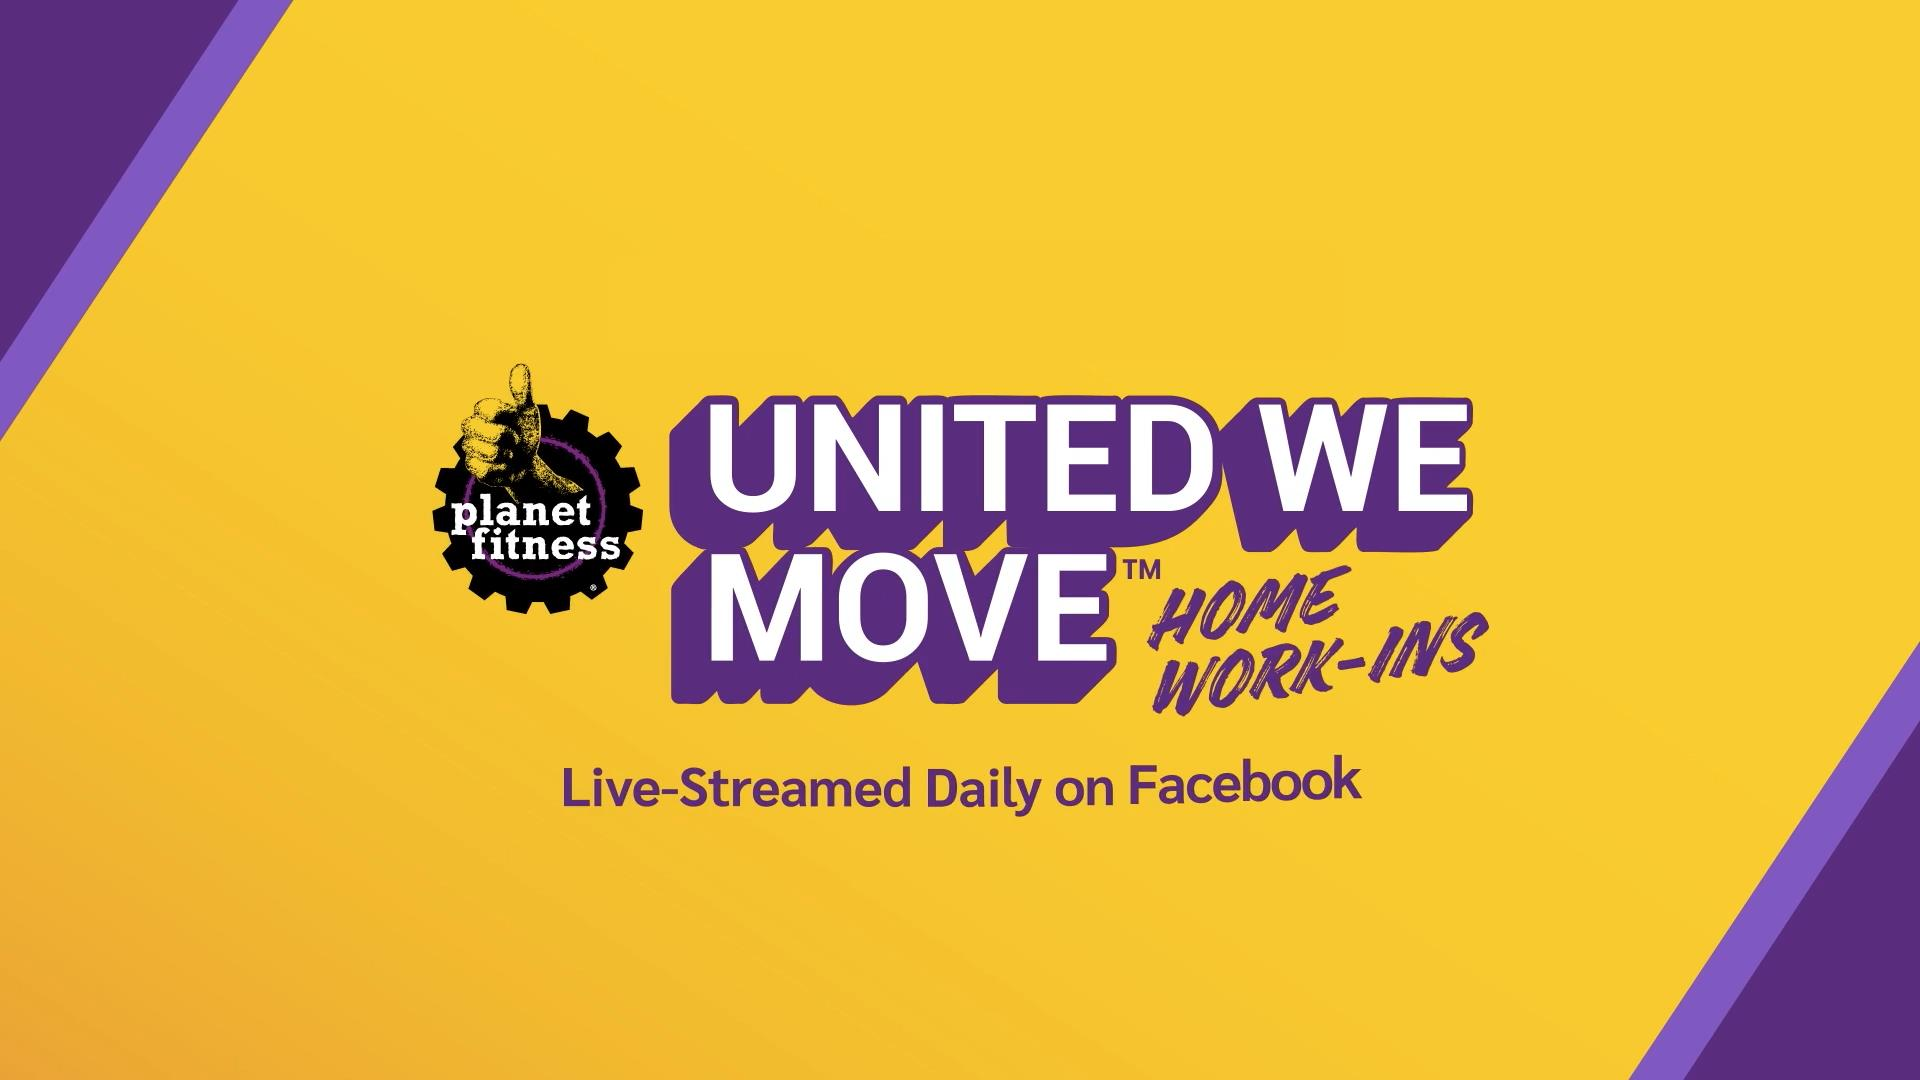 United We Move